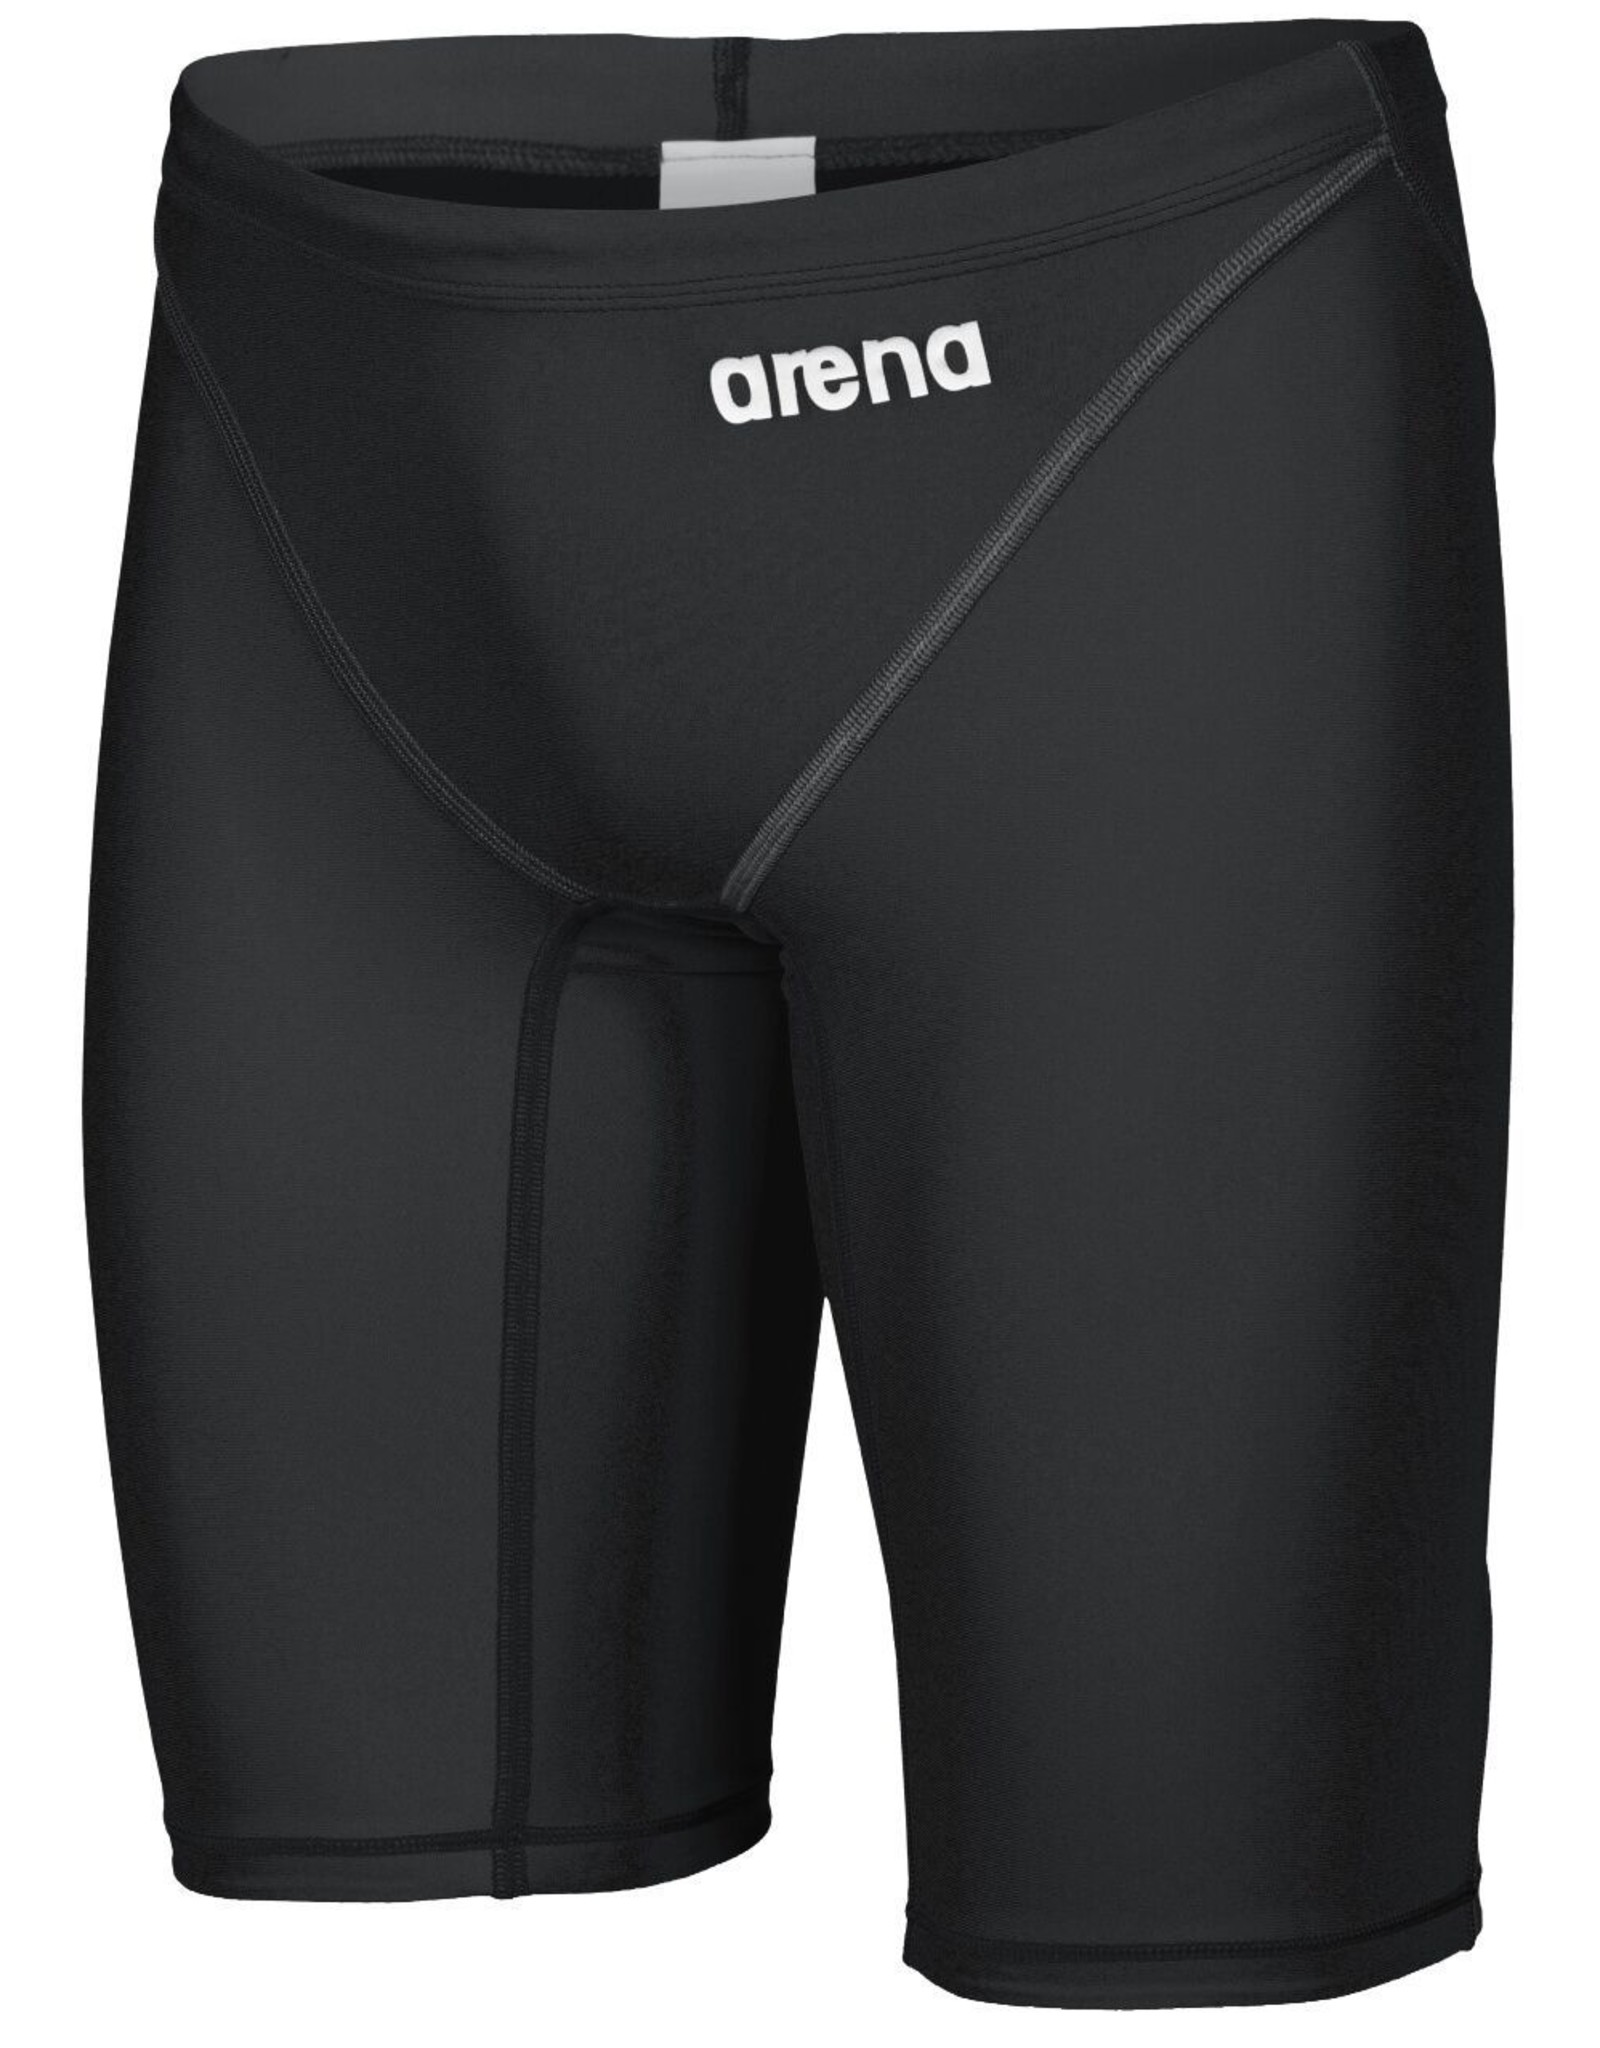 Arena Powerskin ST 2.0 Jammer - 2A900